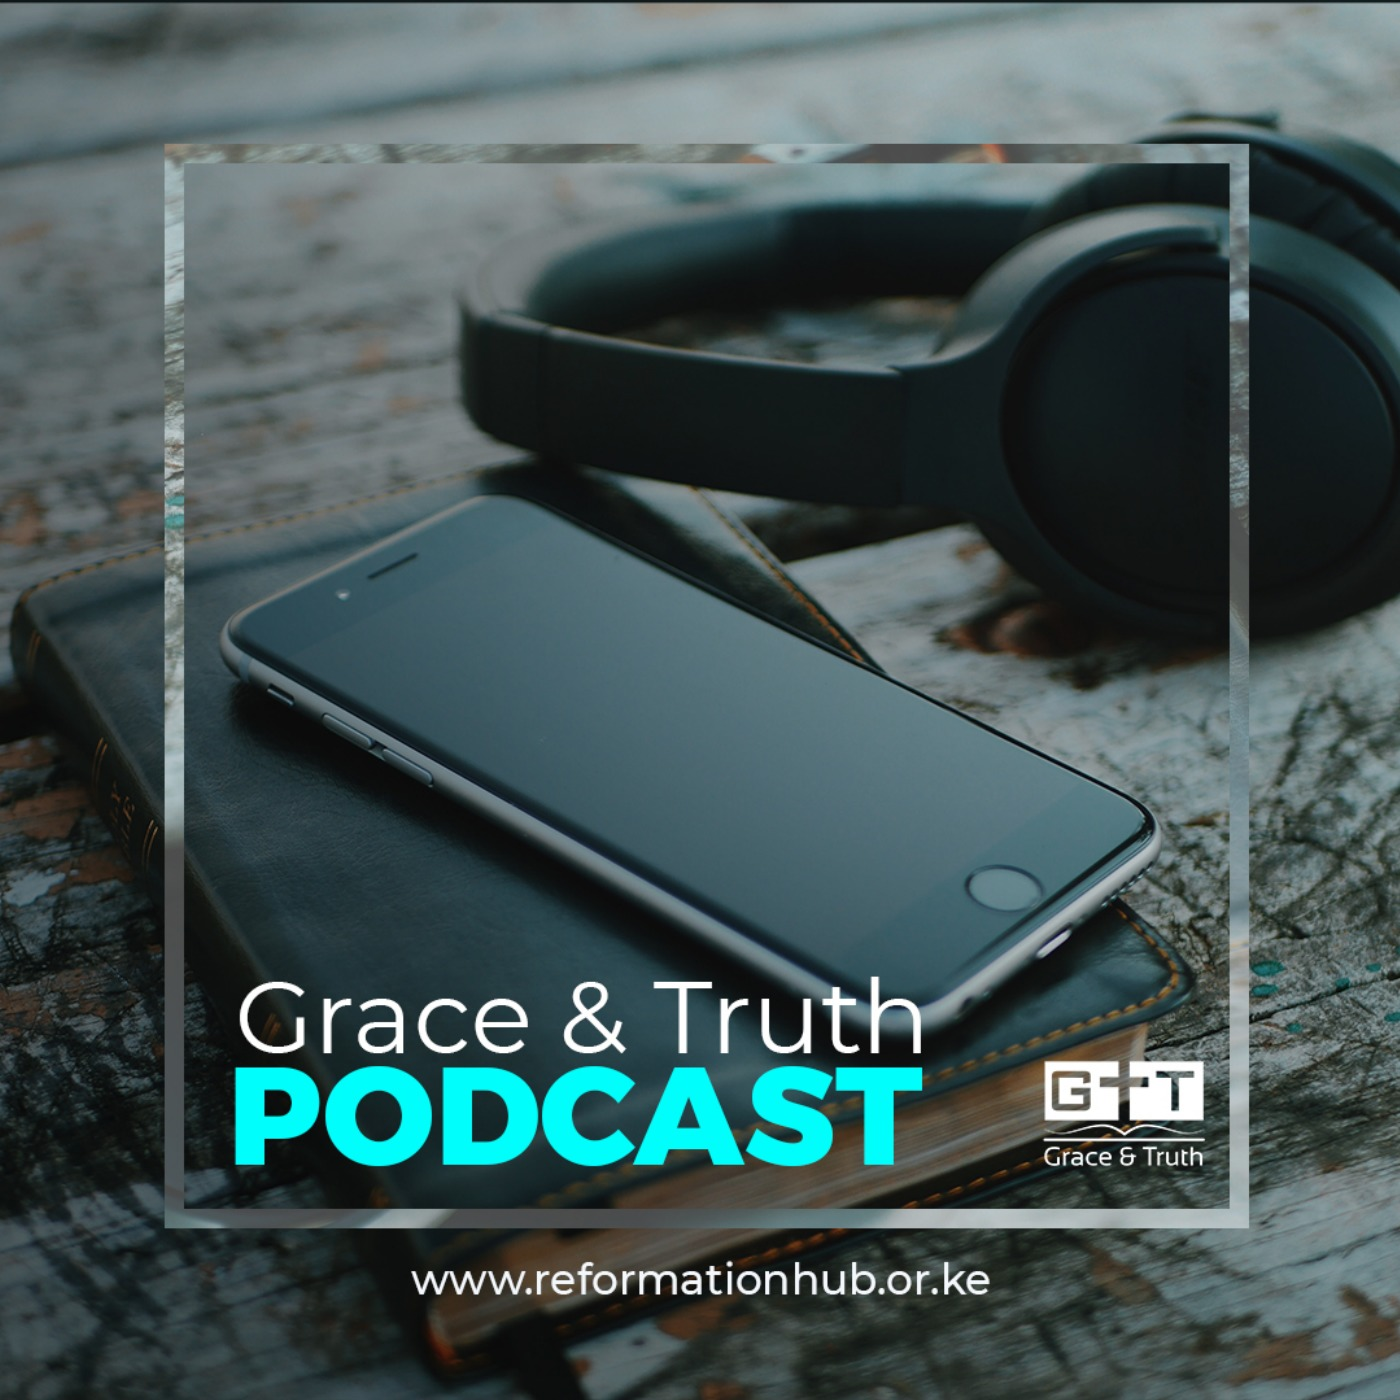 Episode 00: Introducing Grace & Truth Podcast